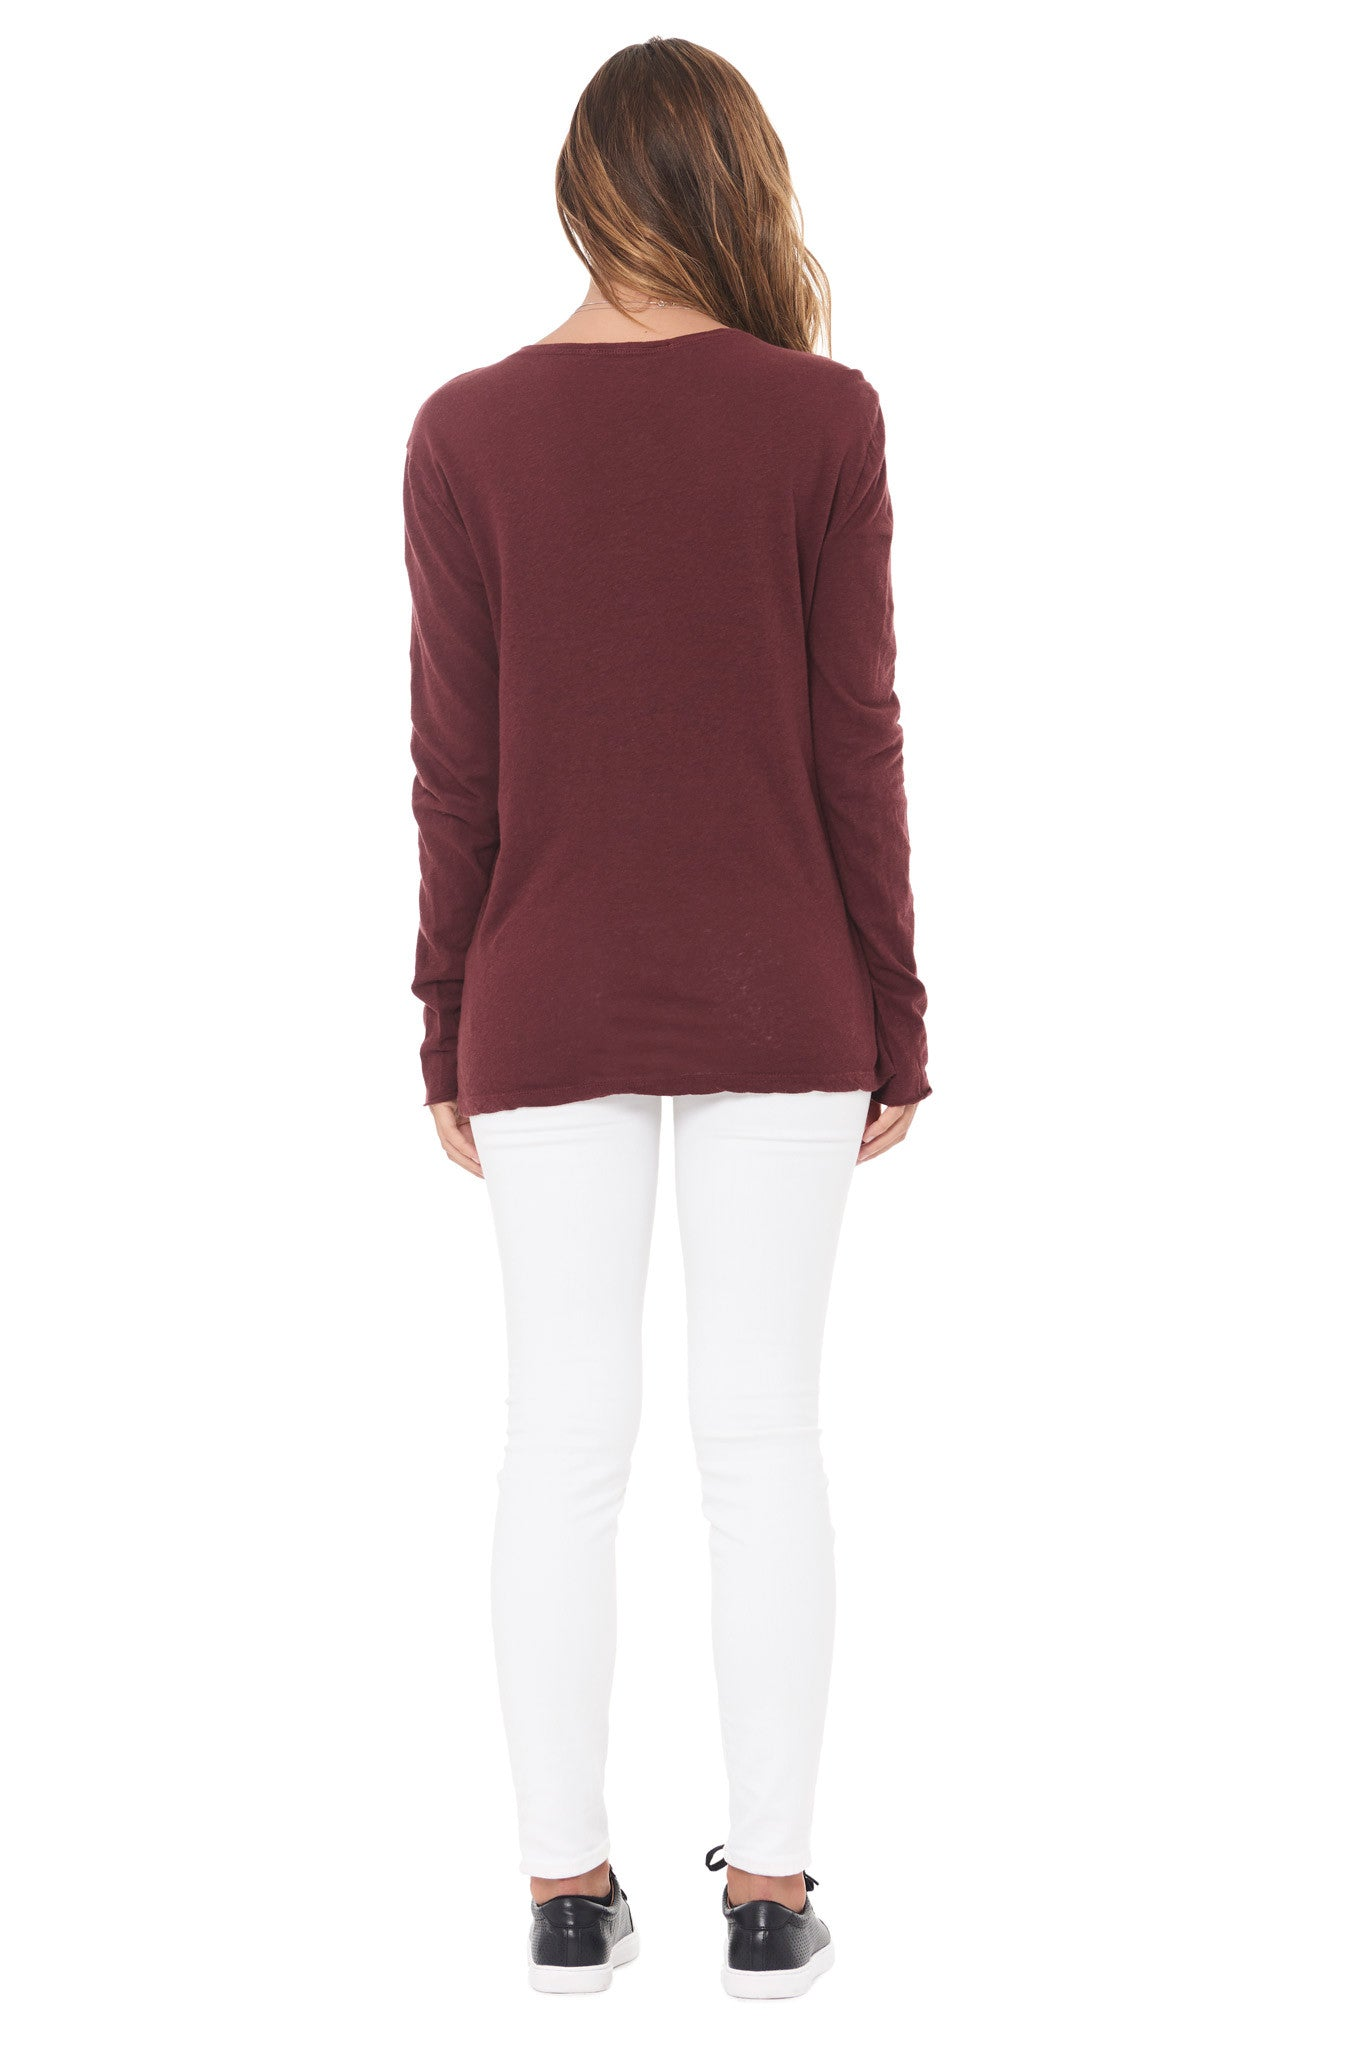 WOMEN'S LINEN BLEND CREW NECK LONG SLEEVE SHIRT - MAROON